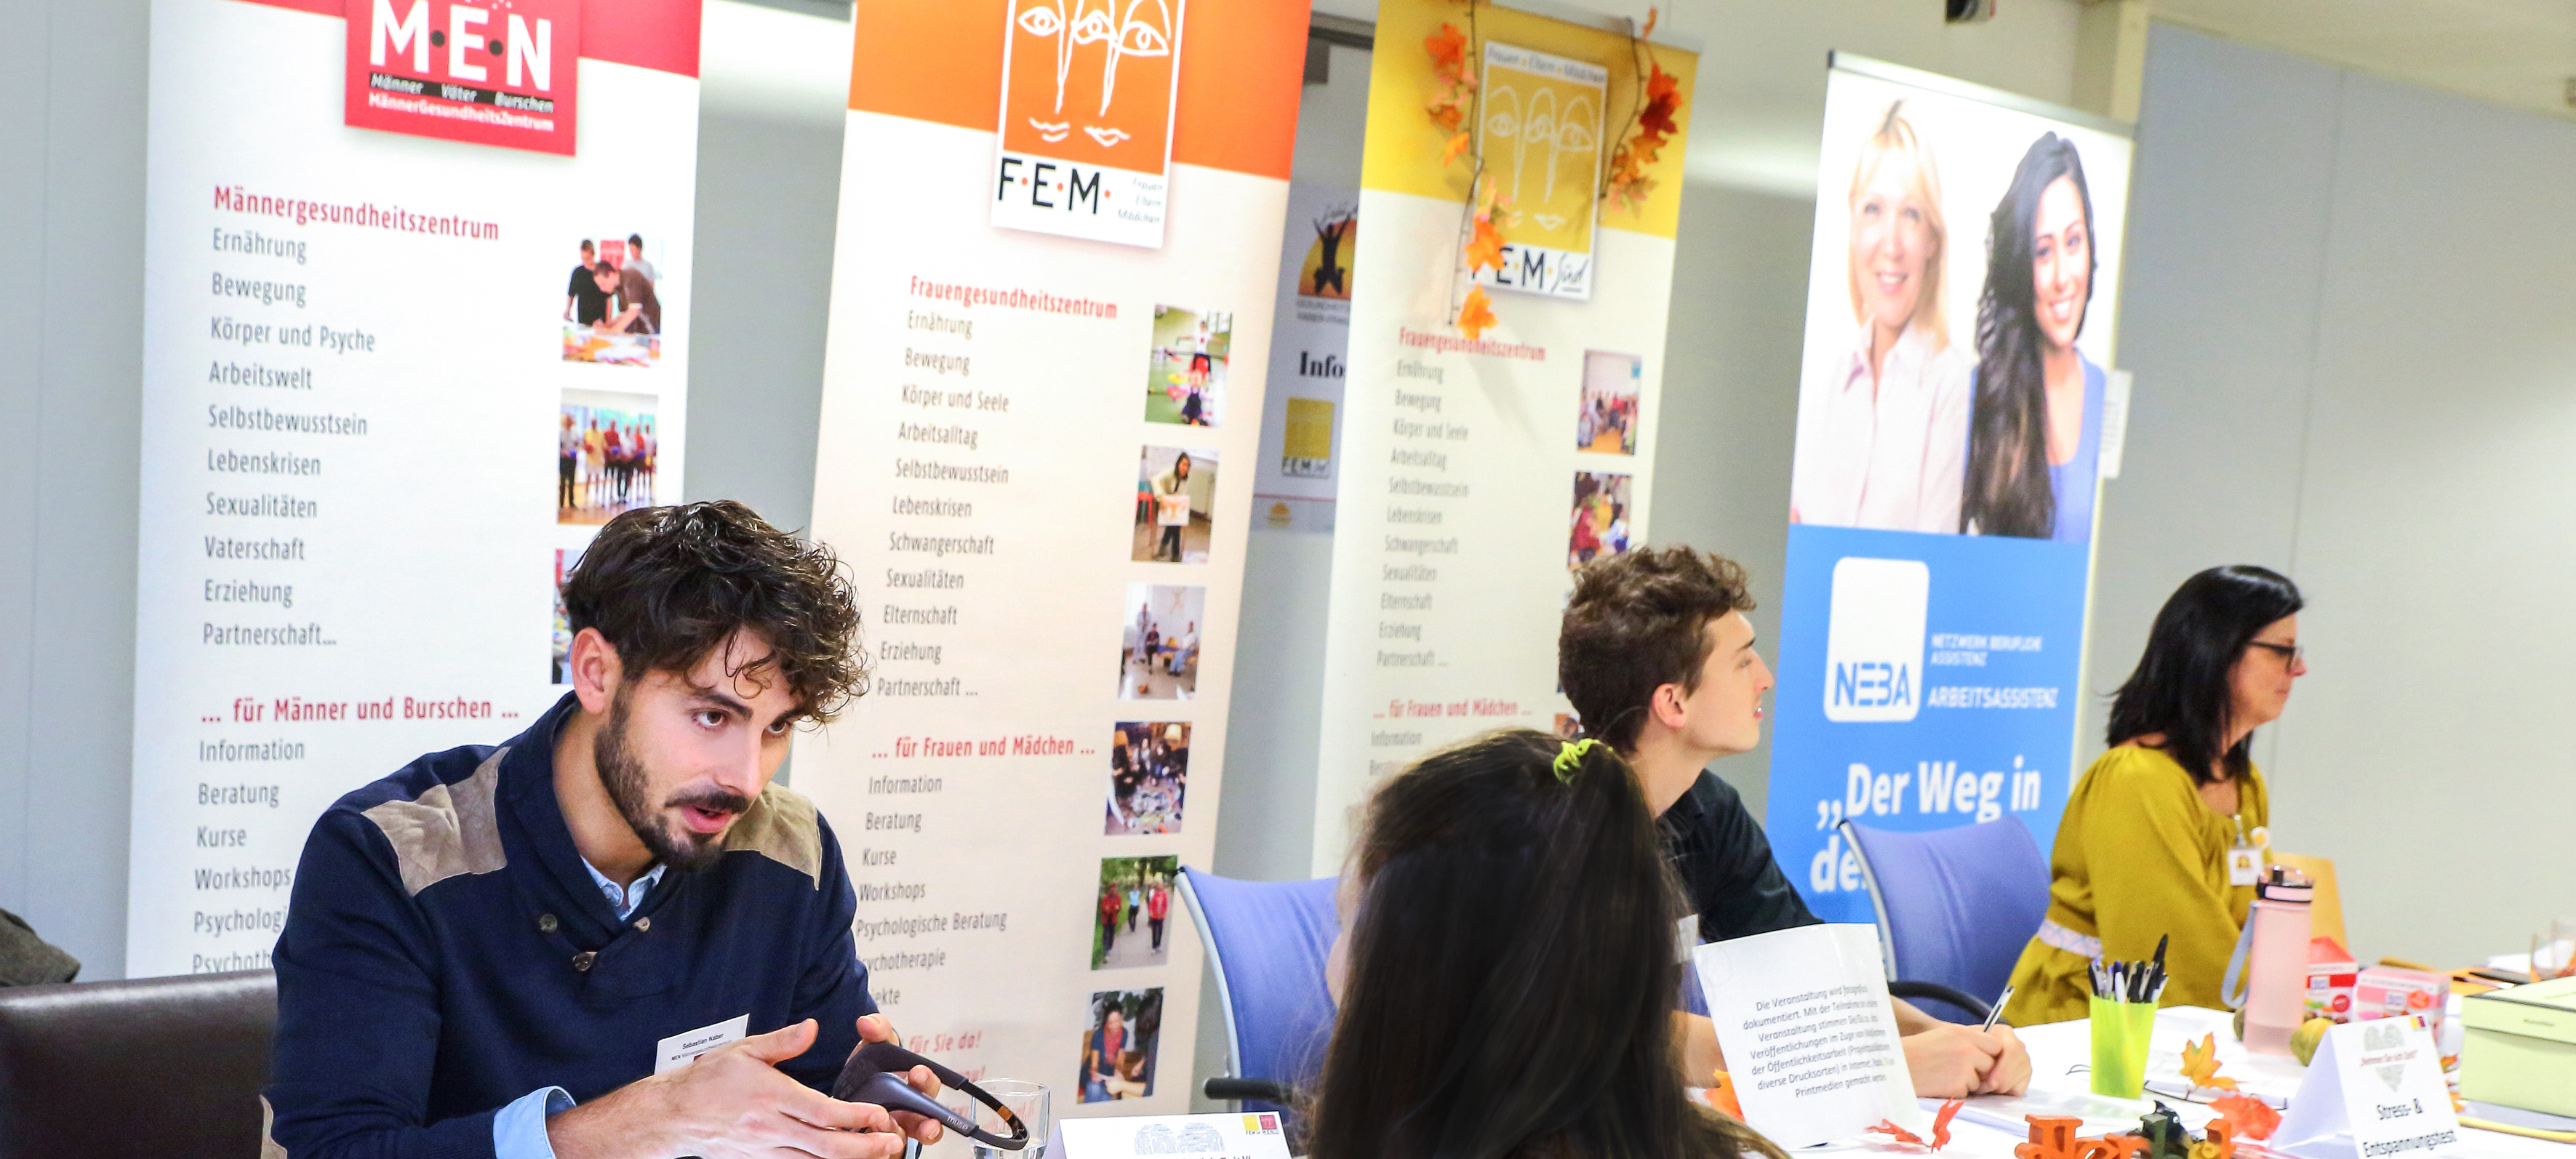 Infostand-FEM-FEMSued-MEN, © phototiller